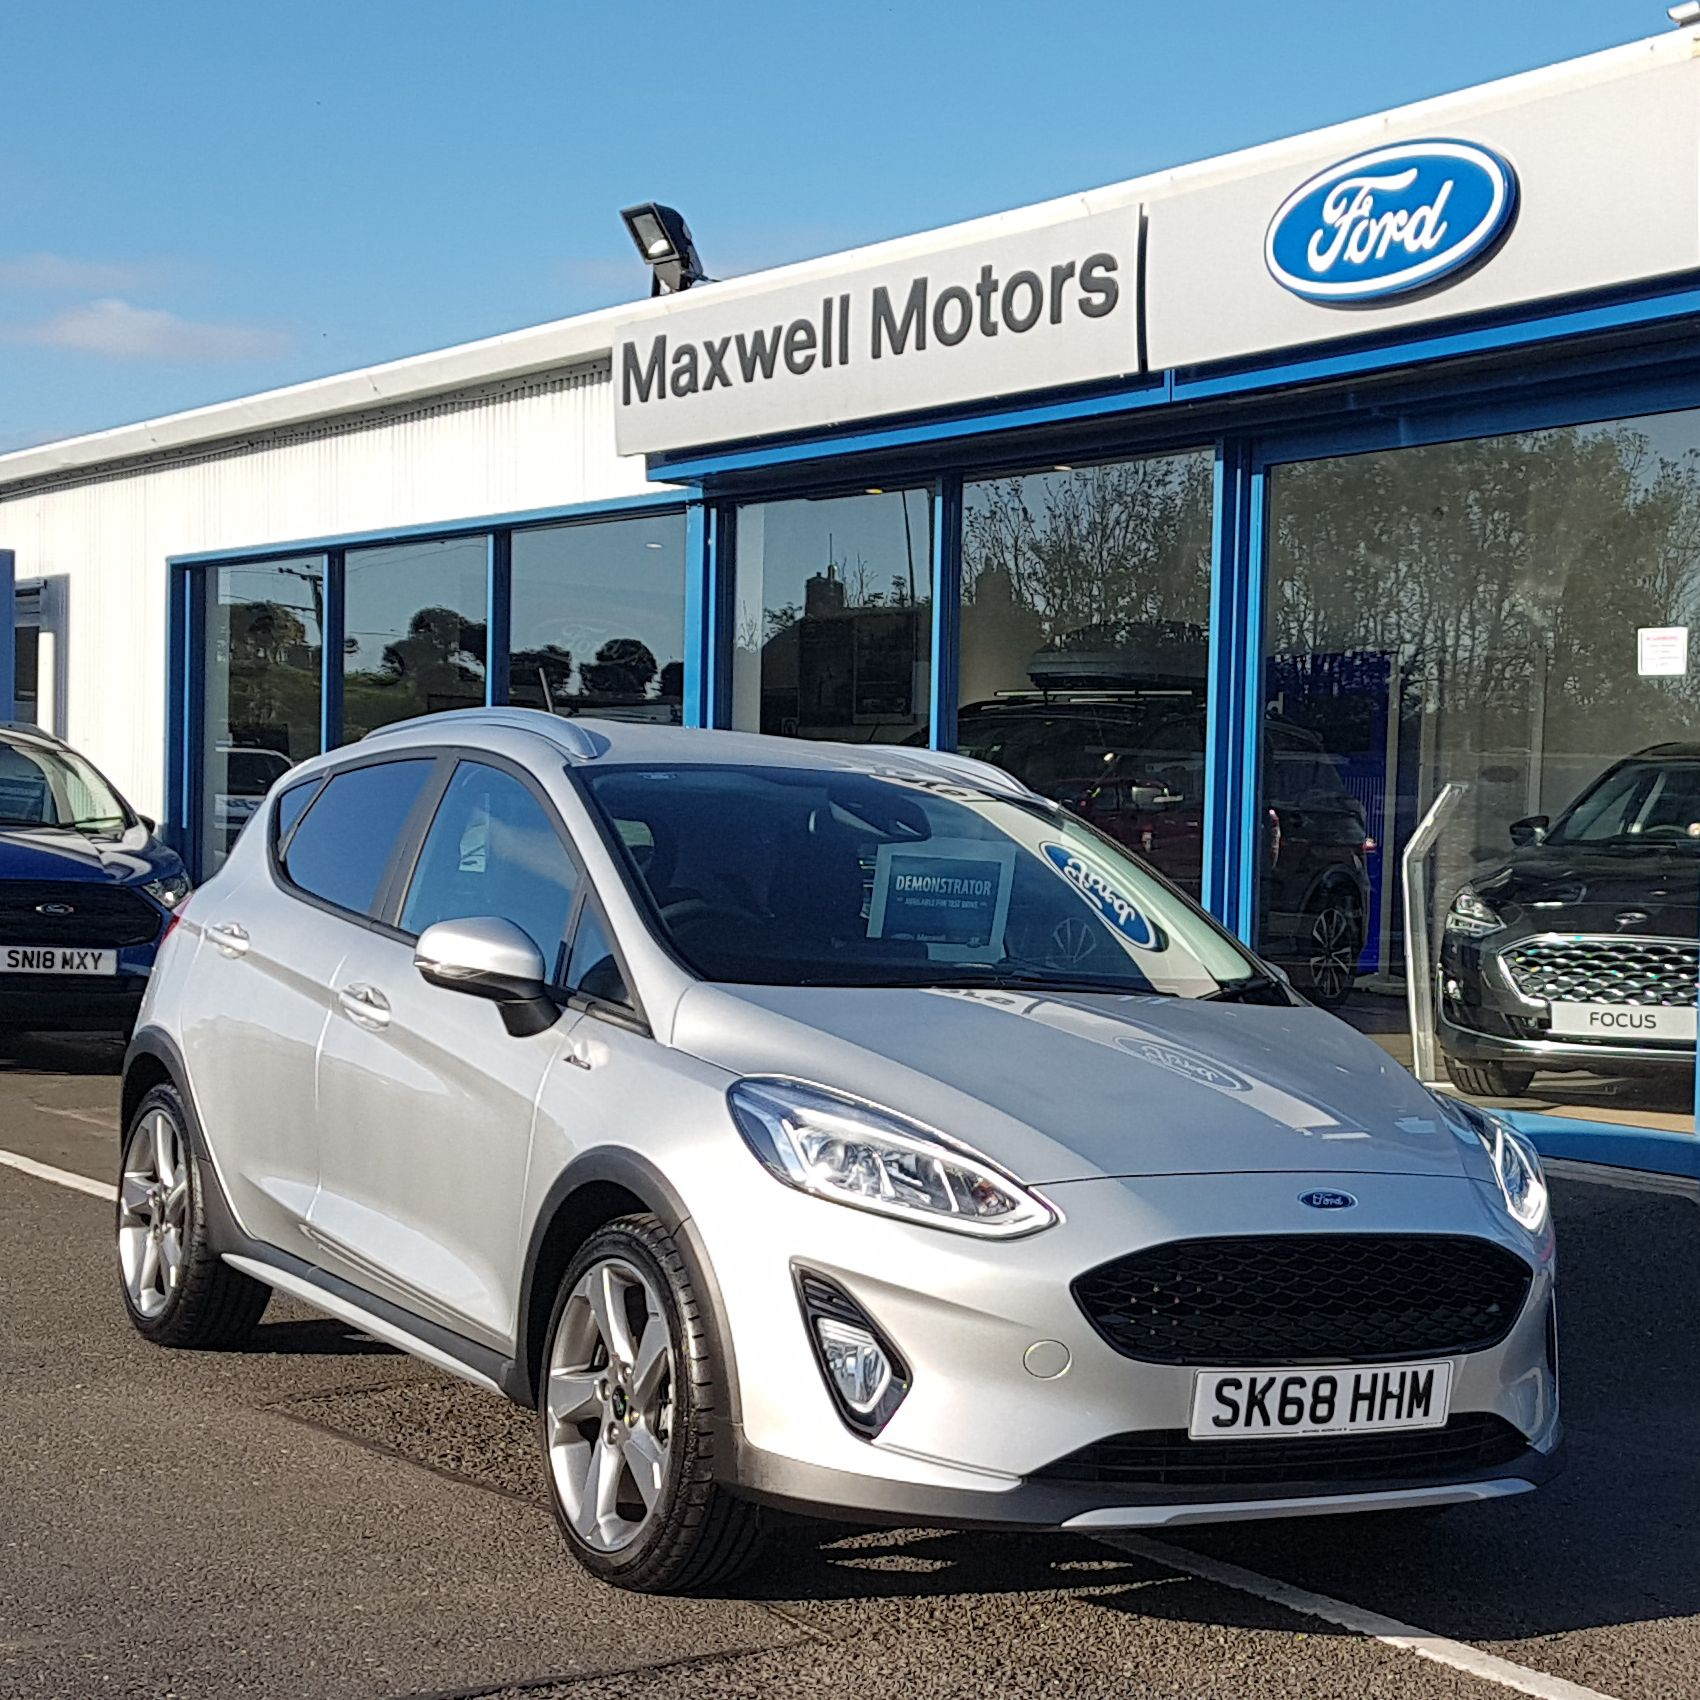 FORD FIESTA ACTIVE 1.0 100PS POWERSHIFT 5DR